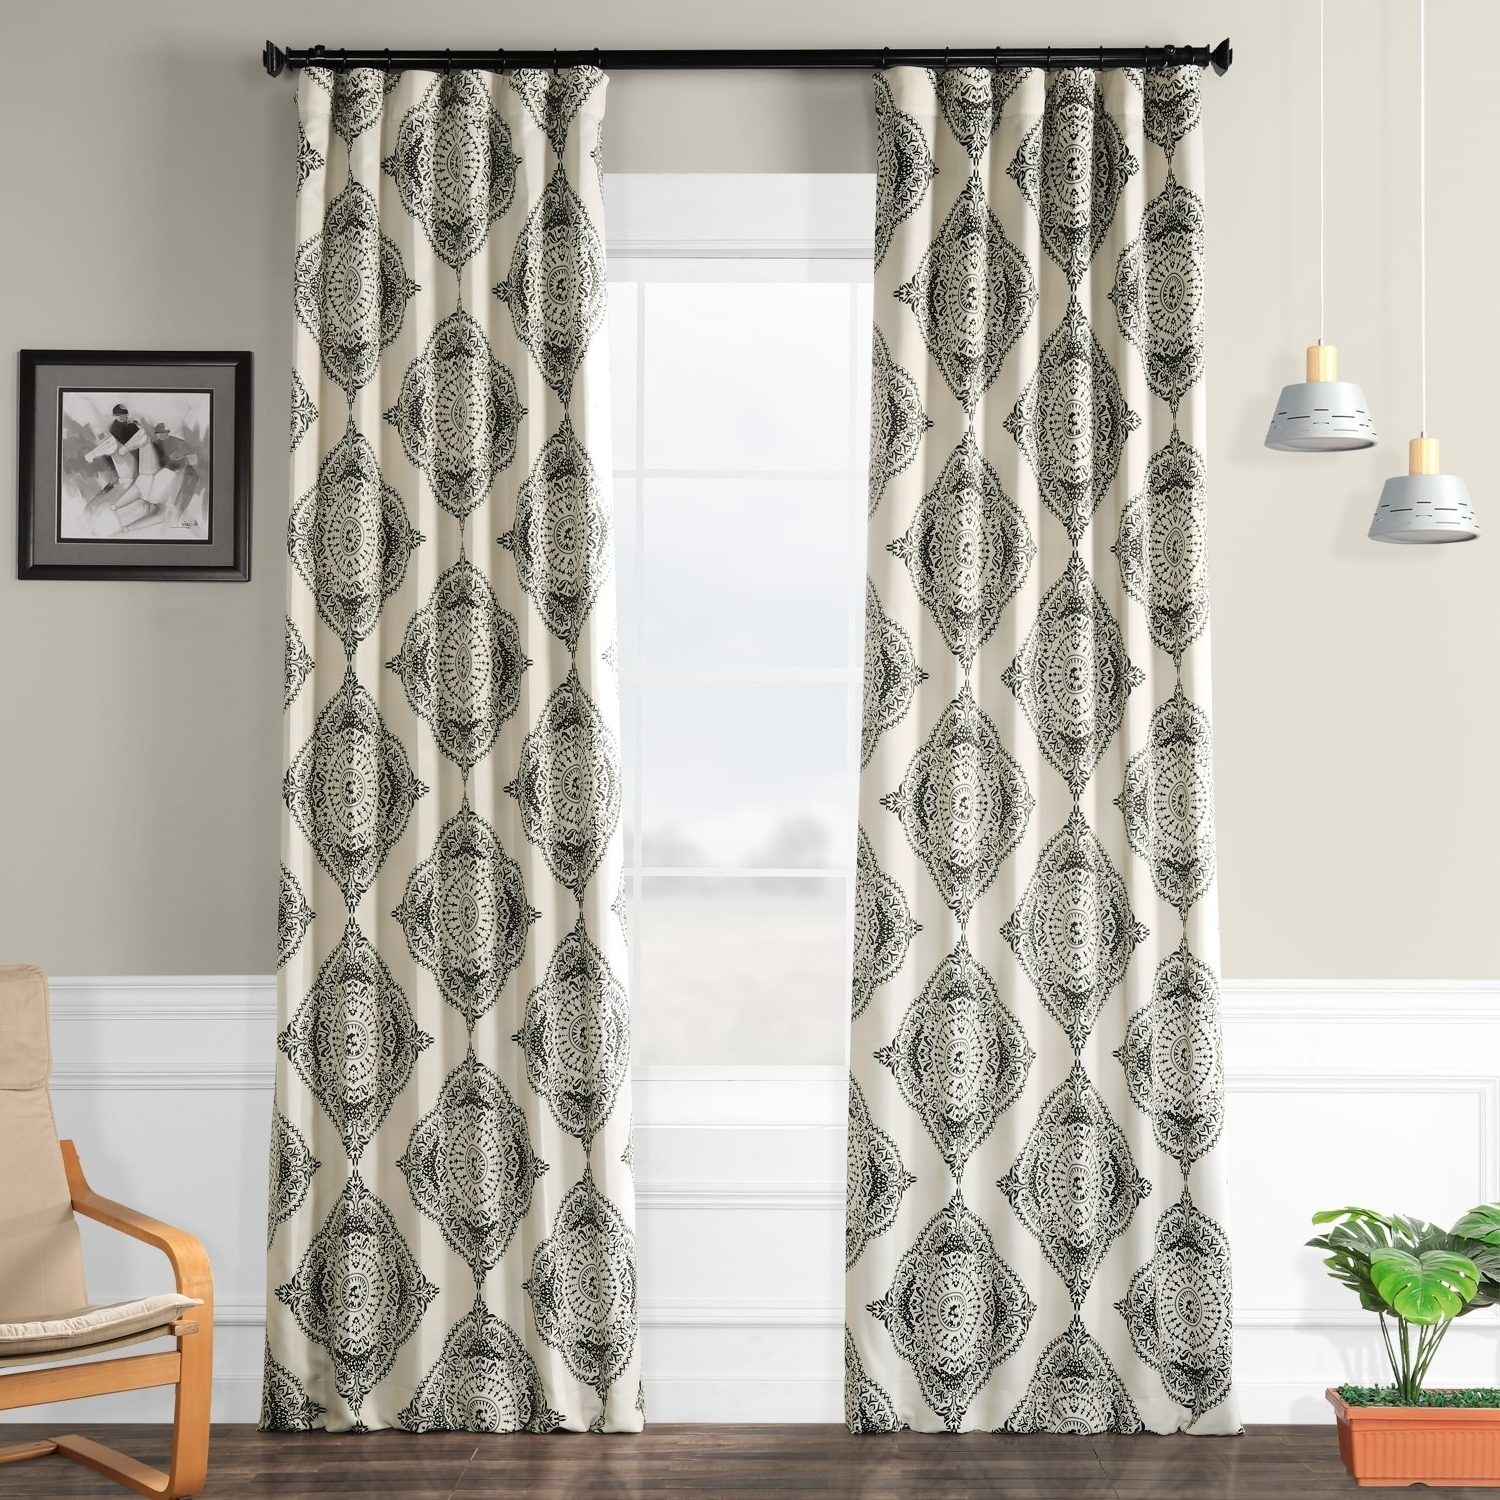 Exclusive Fabrics Moroccan Style Thermal Insulated Blackout Curtain Panel Pair Throughout Fashionable Moroccan Style Thermal Insulated Blackout Curtain Panel Pairs (View 9 of 20)